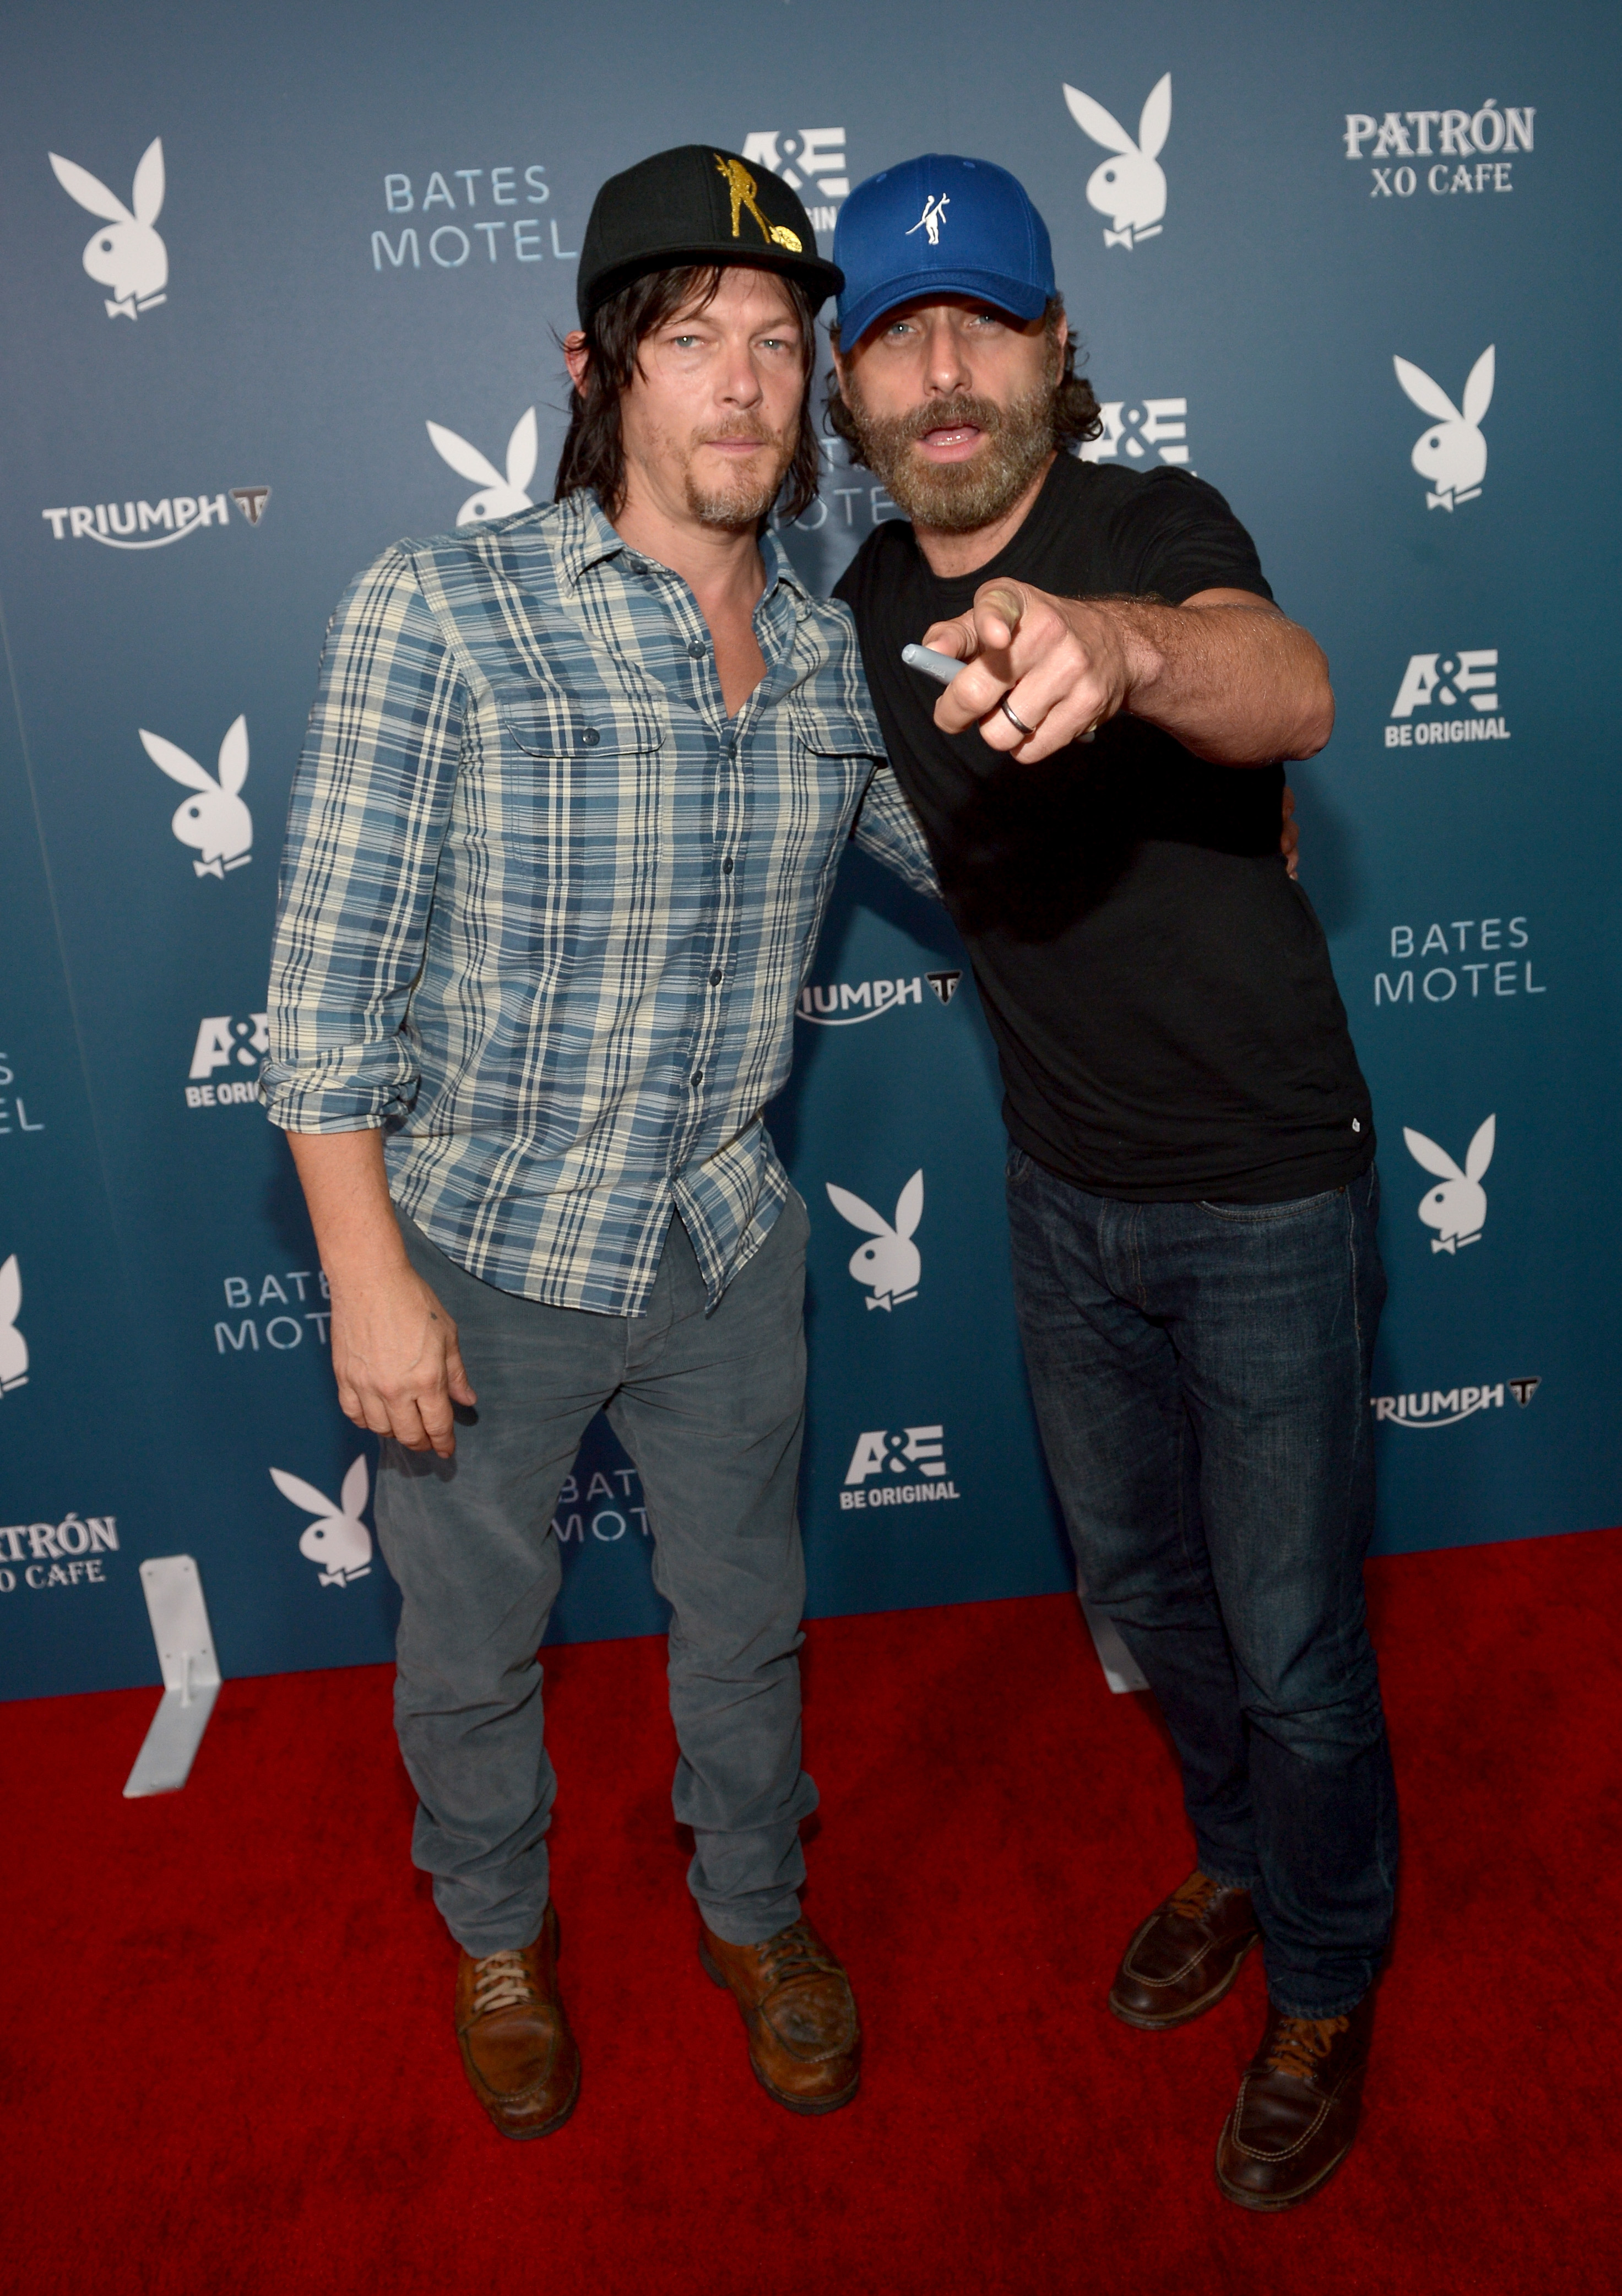 Norman Reedus and Andy Lincoln at a Bates Motel Event at San Diego Comic Con in July 2014